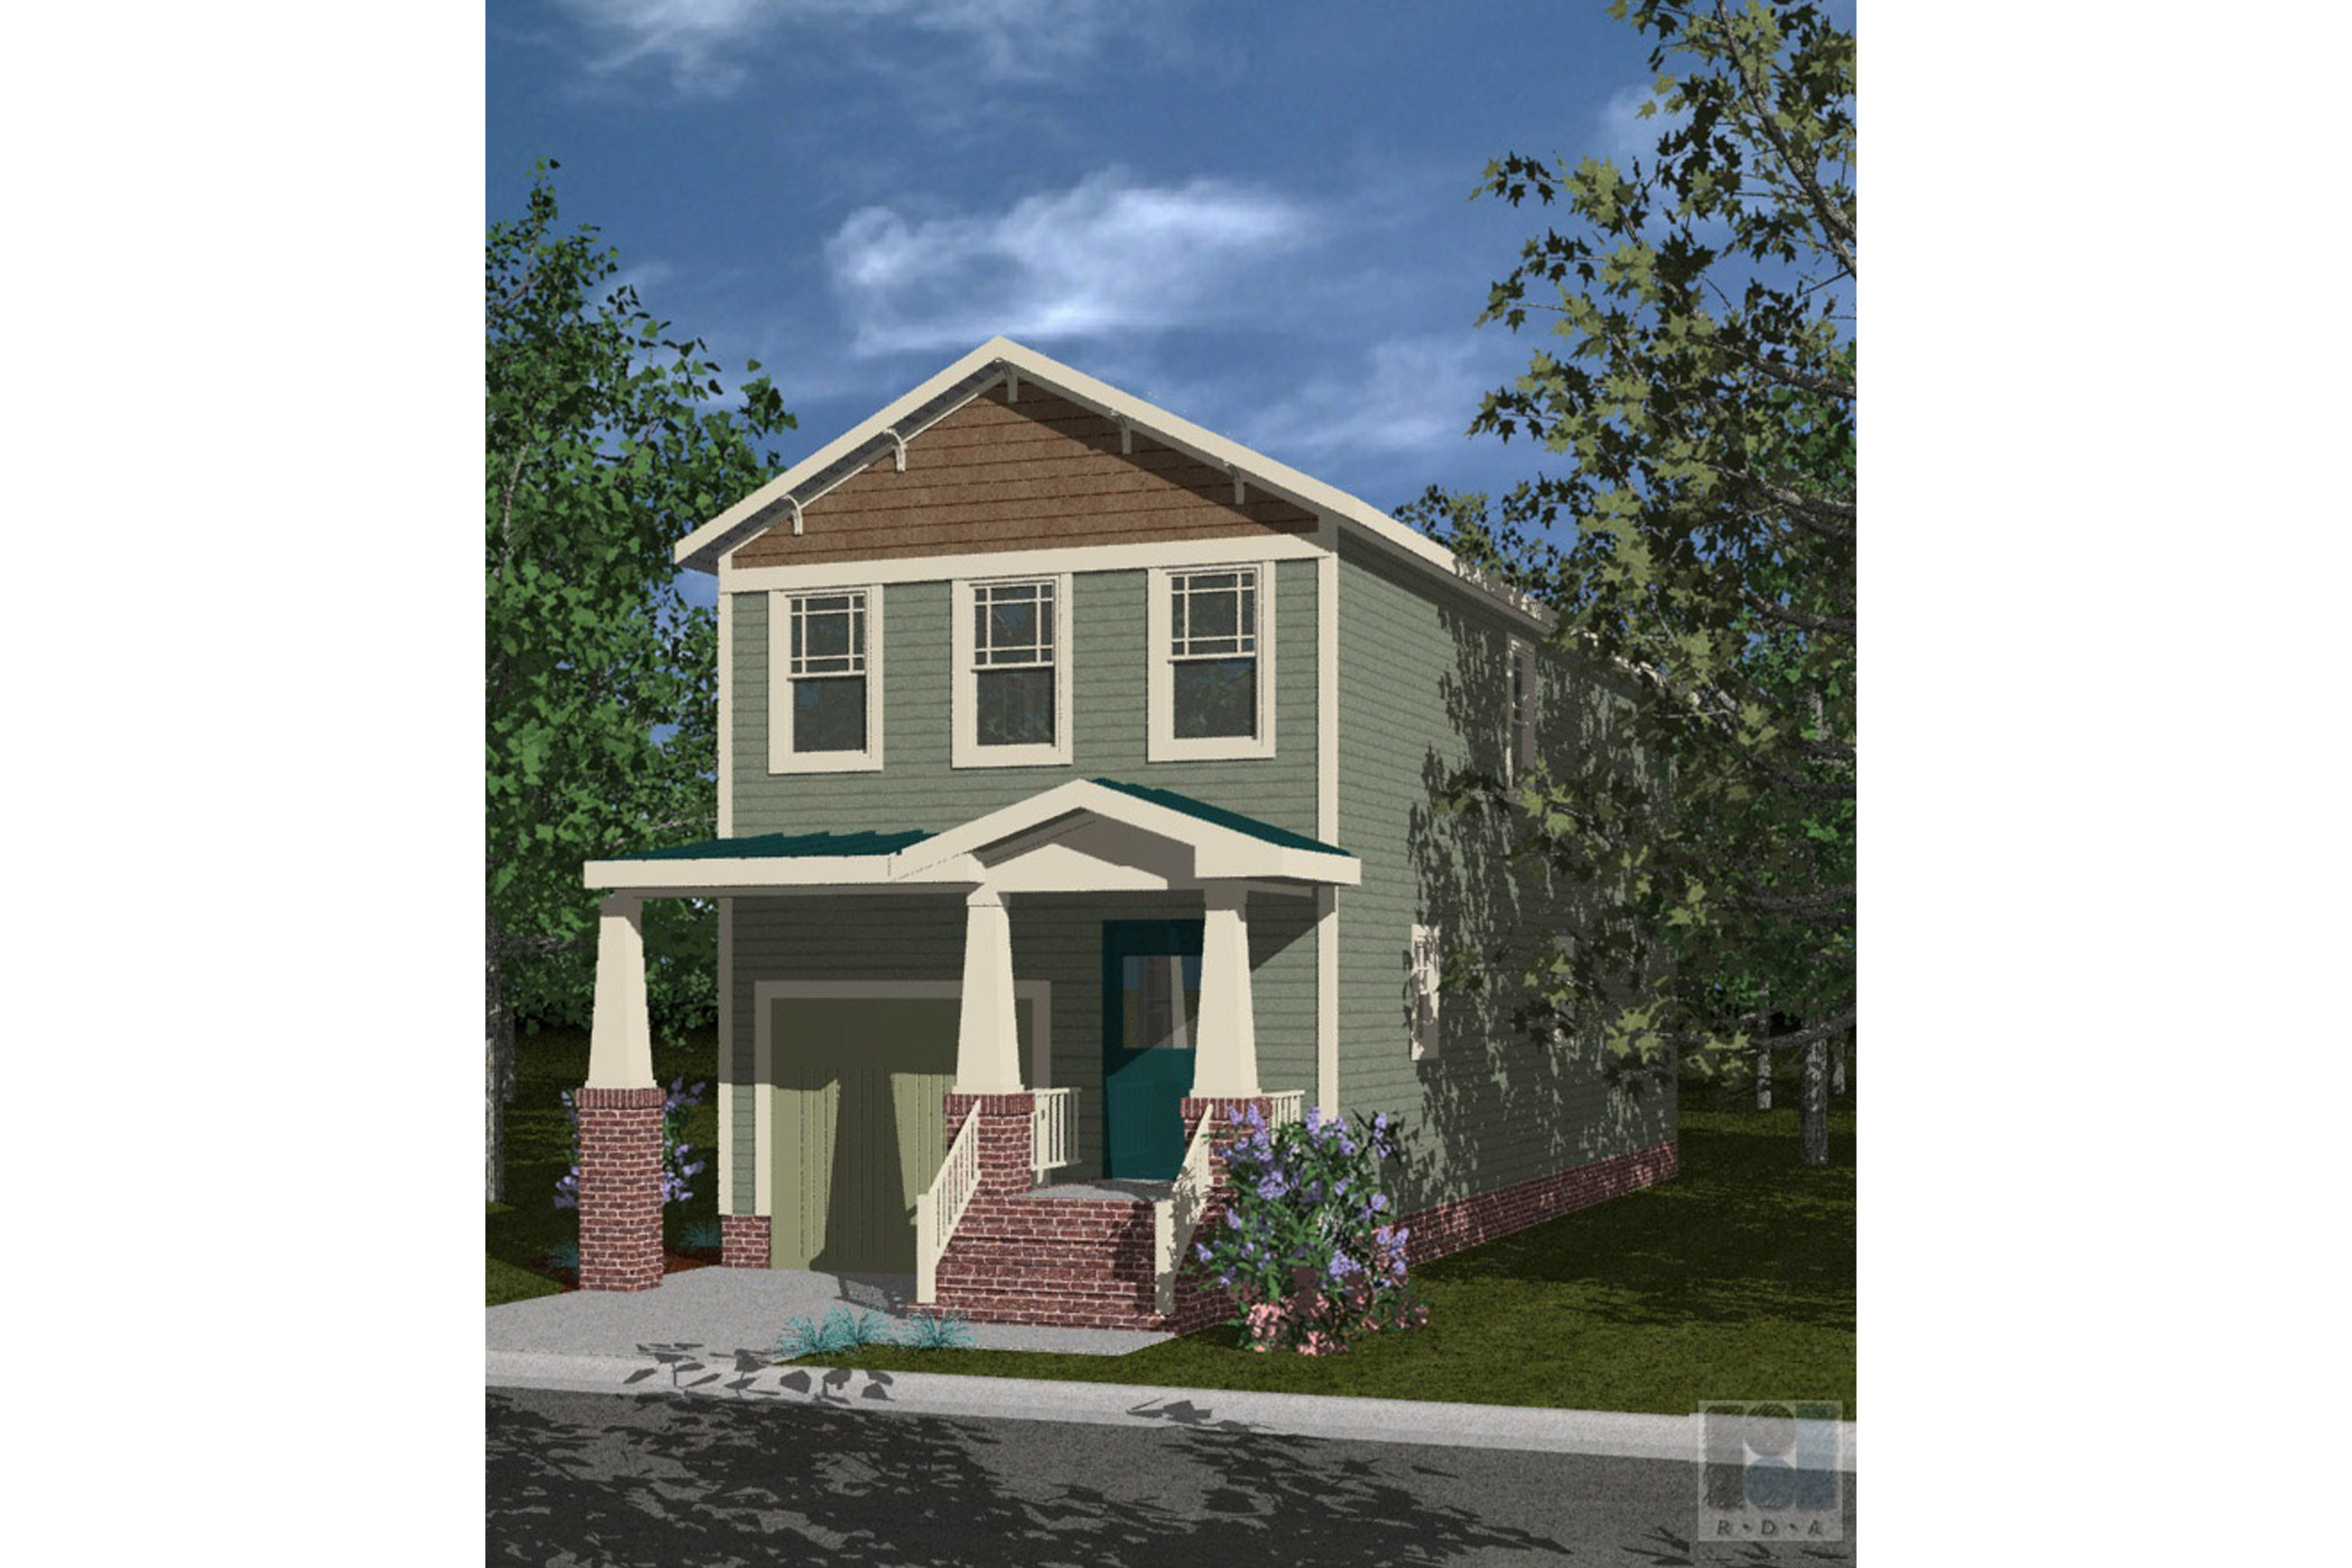 House Plan 162 - The Onley 3